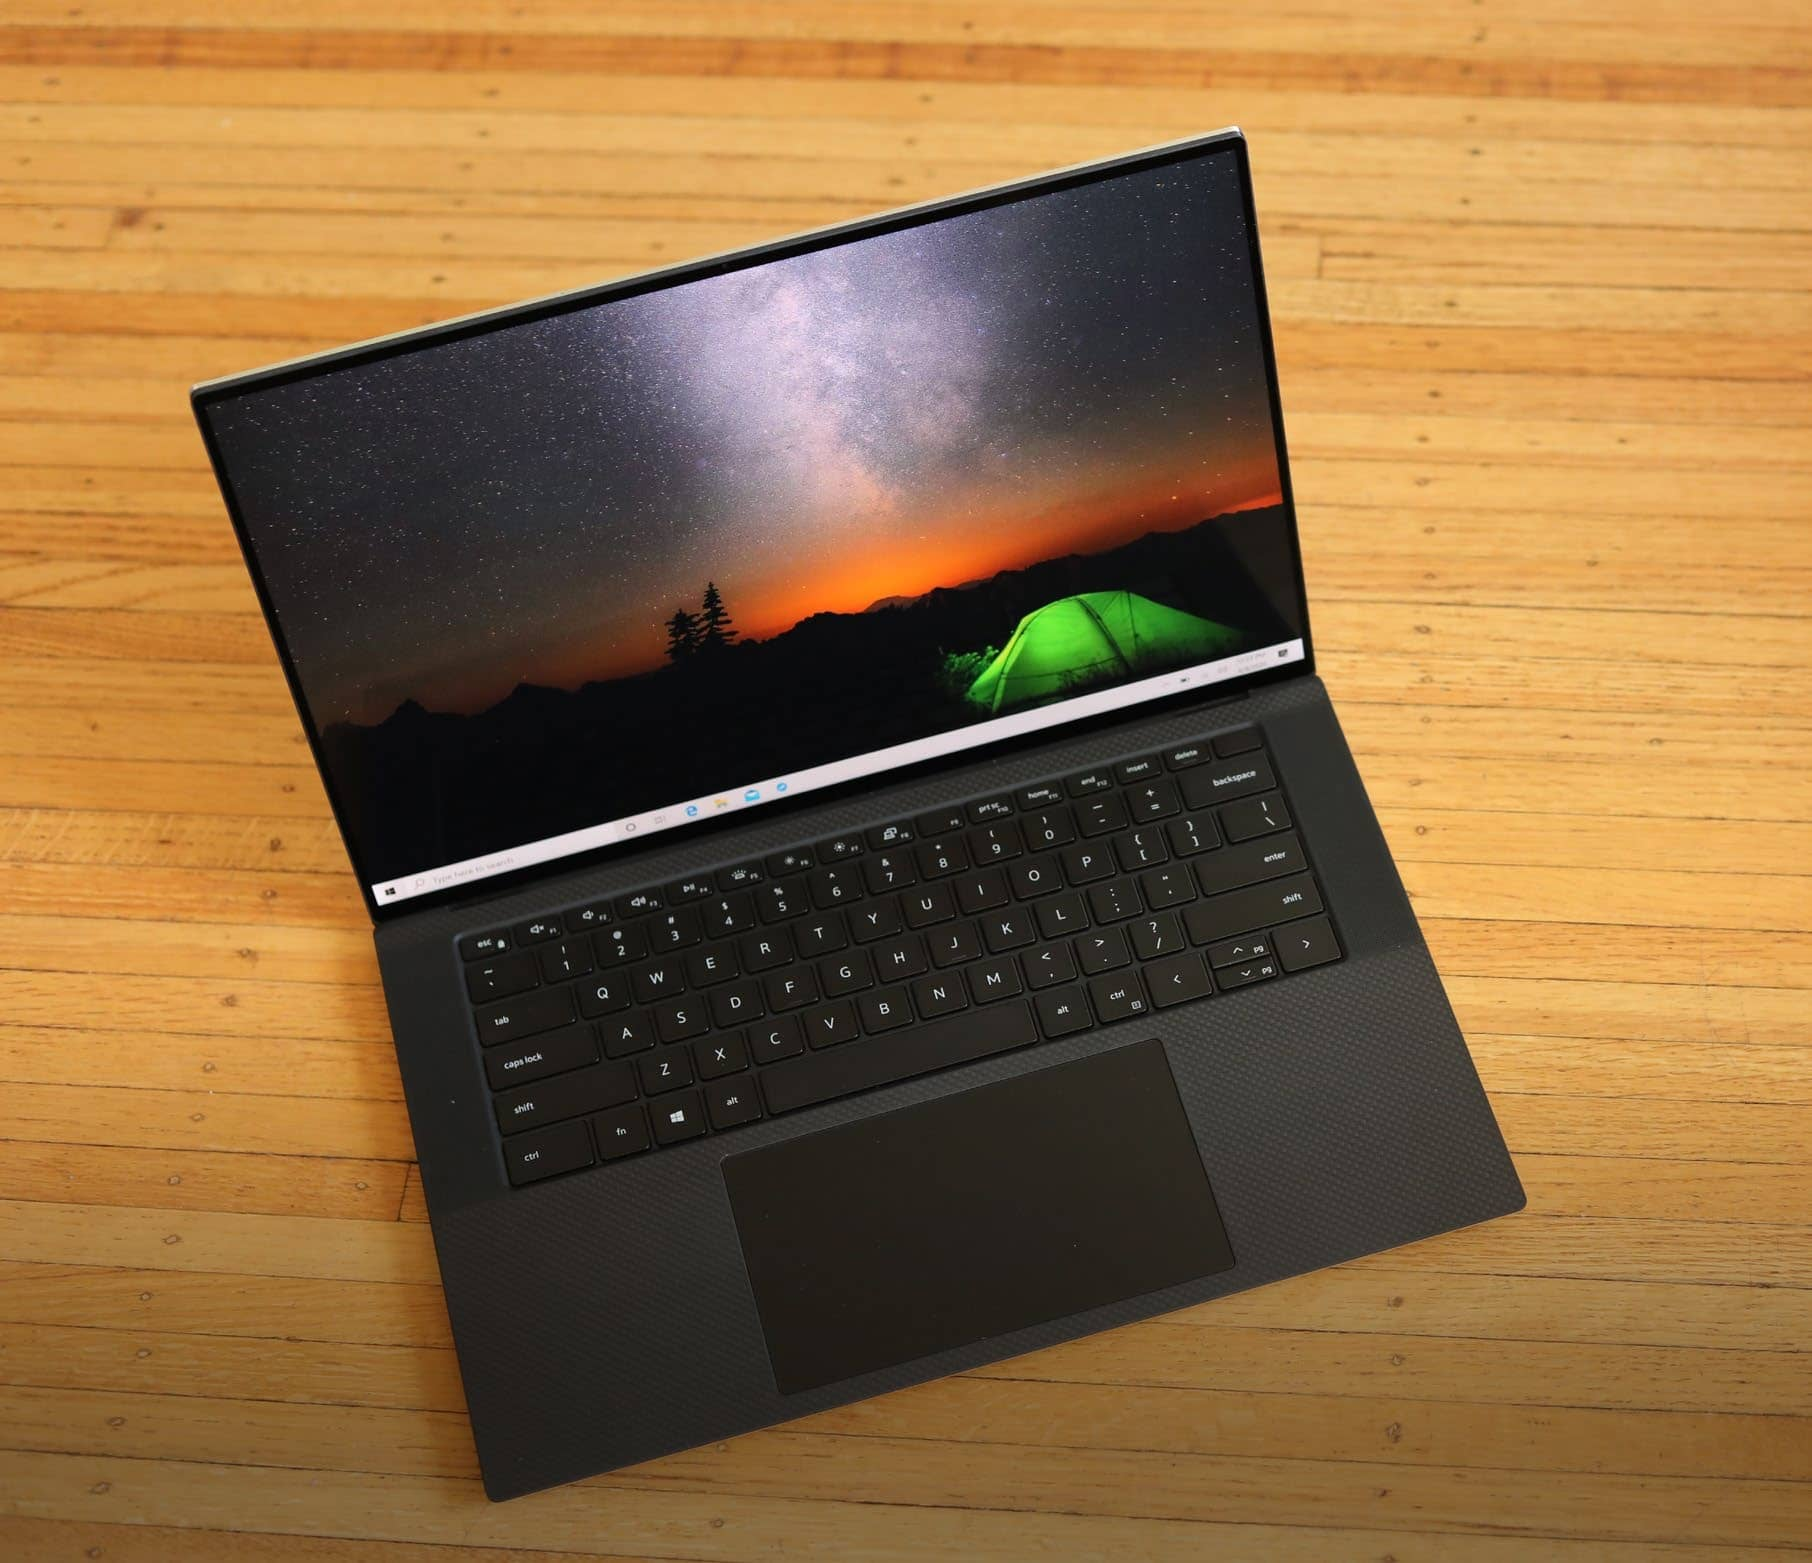 Dell XPS 15 9500: Buy this laptop instead of a MacBook Pro 16